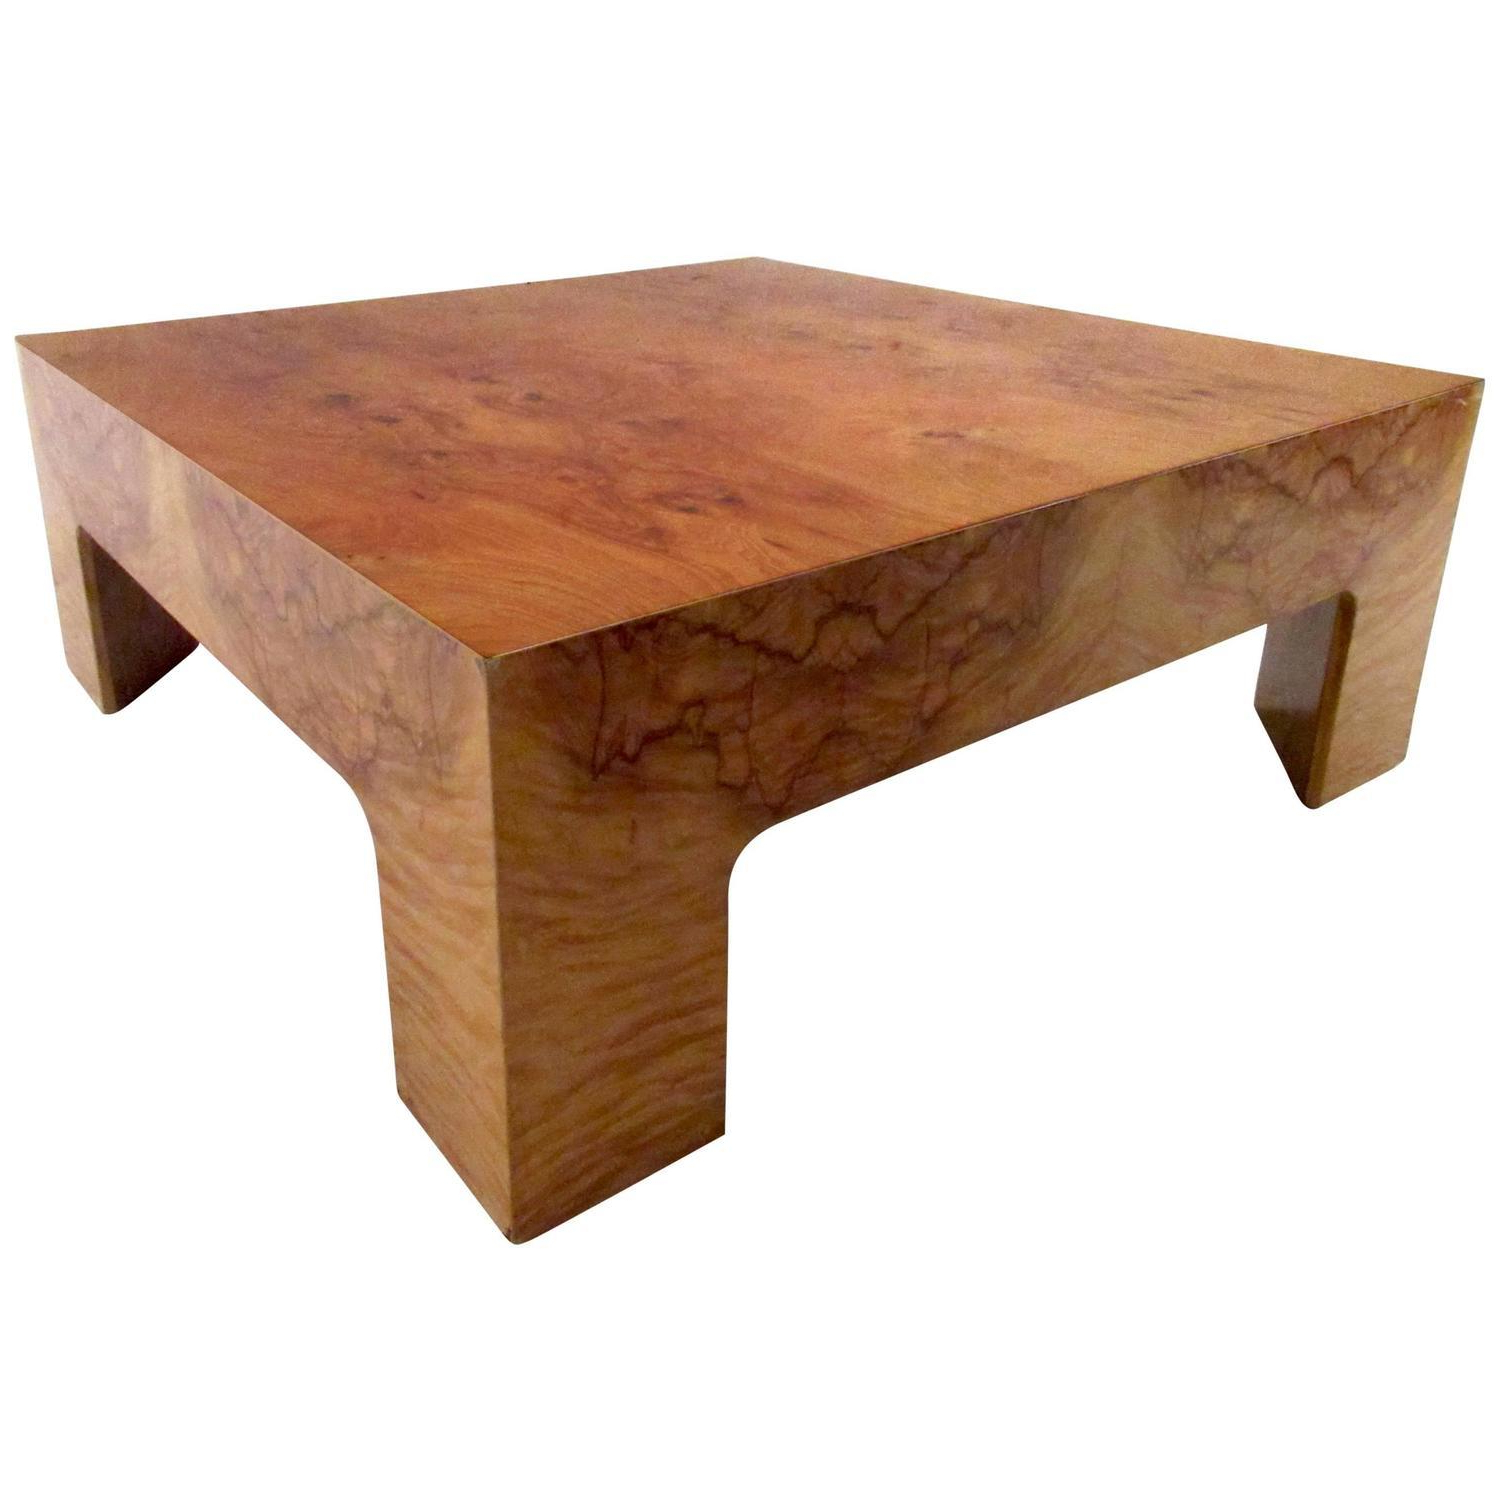 Well Known Burlwood Coffee Table Intended For Oslo Burl Wood Veneer Coffee Tables (Gallery 13 of 20)